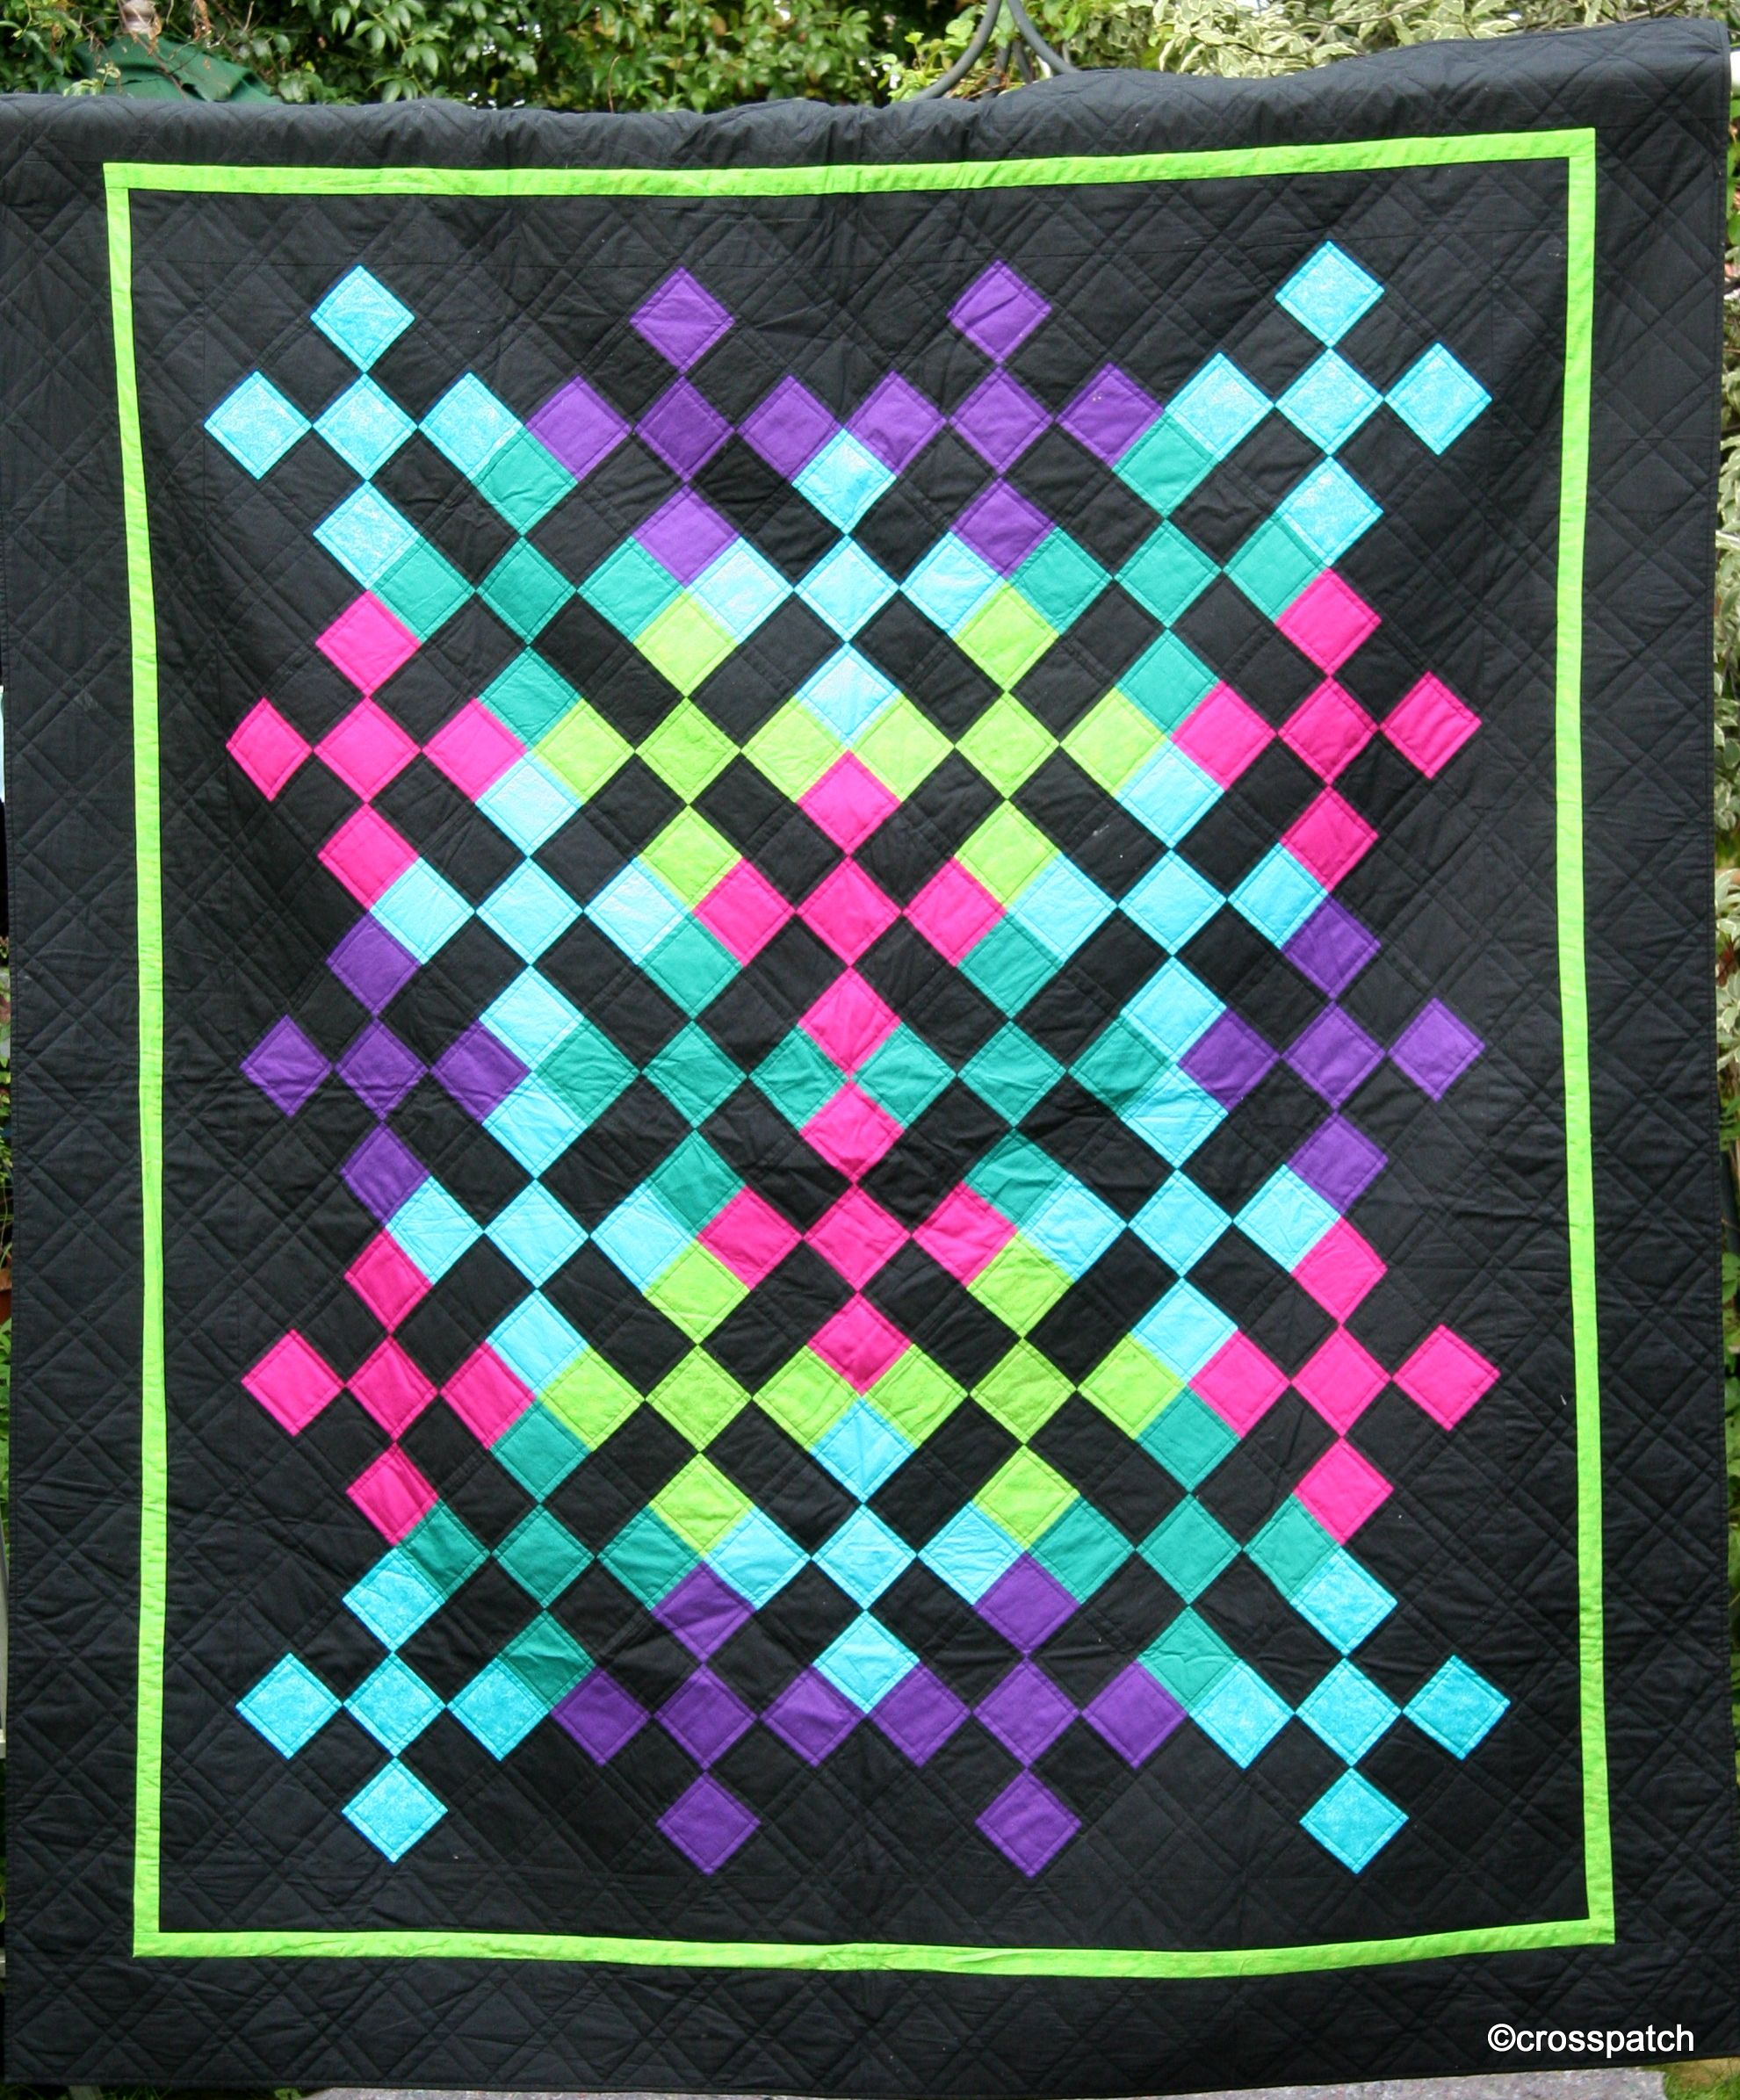 Amish-inspired quilt with bright neon colors at Crosspatch | Amish ... : amish quilts designs - Adamdwight.com